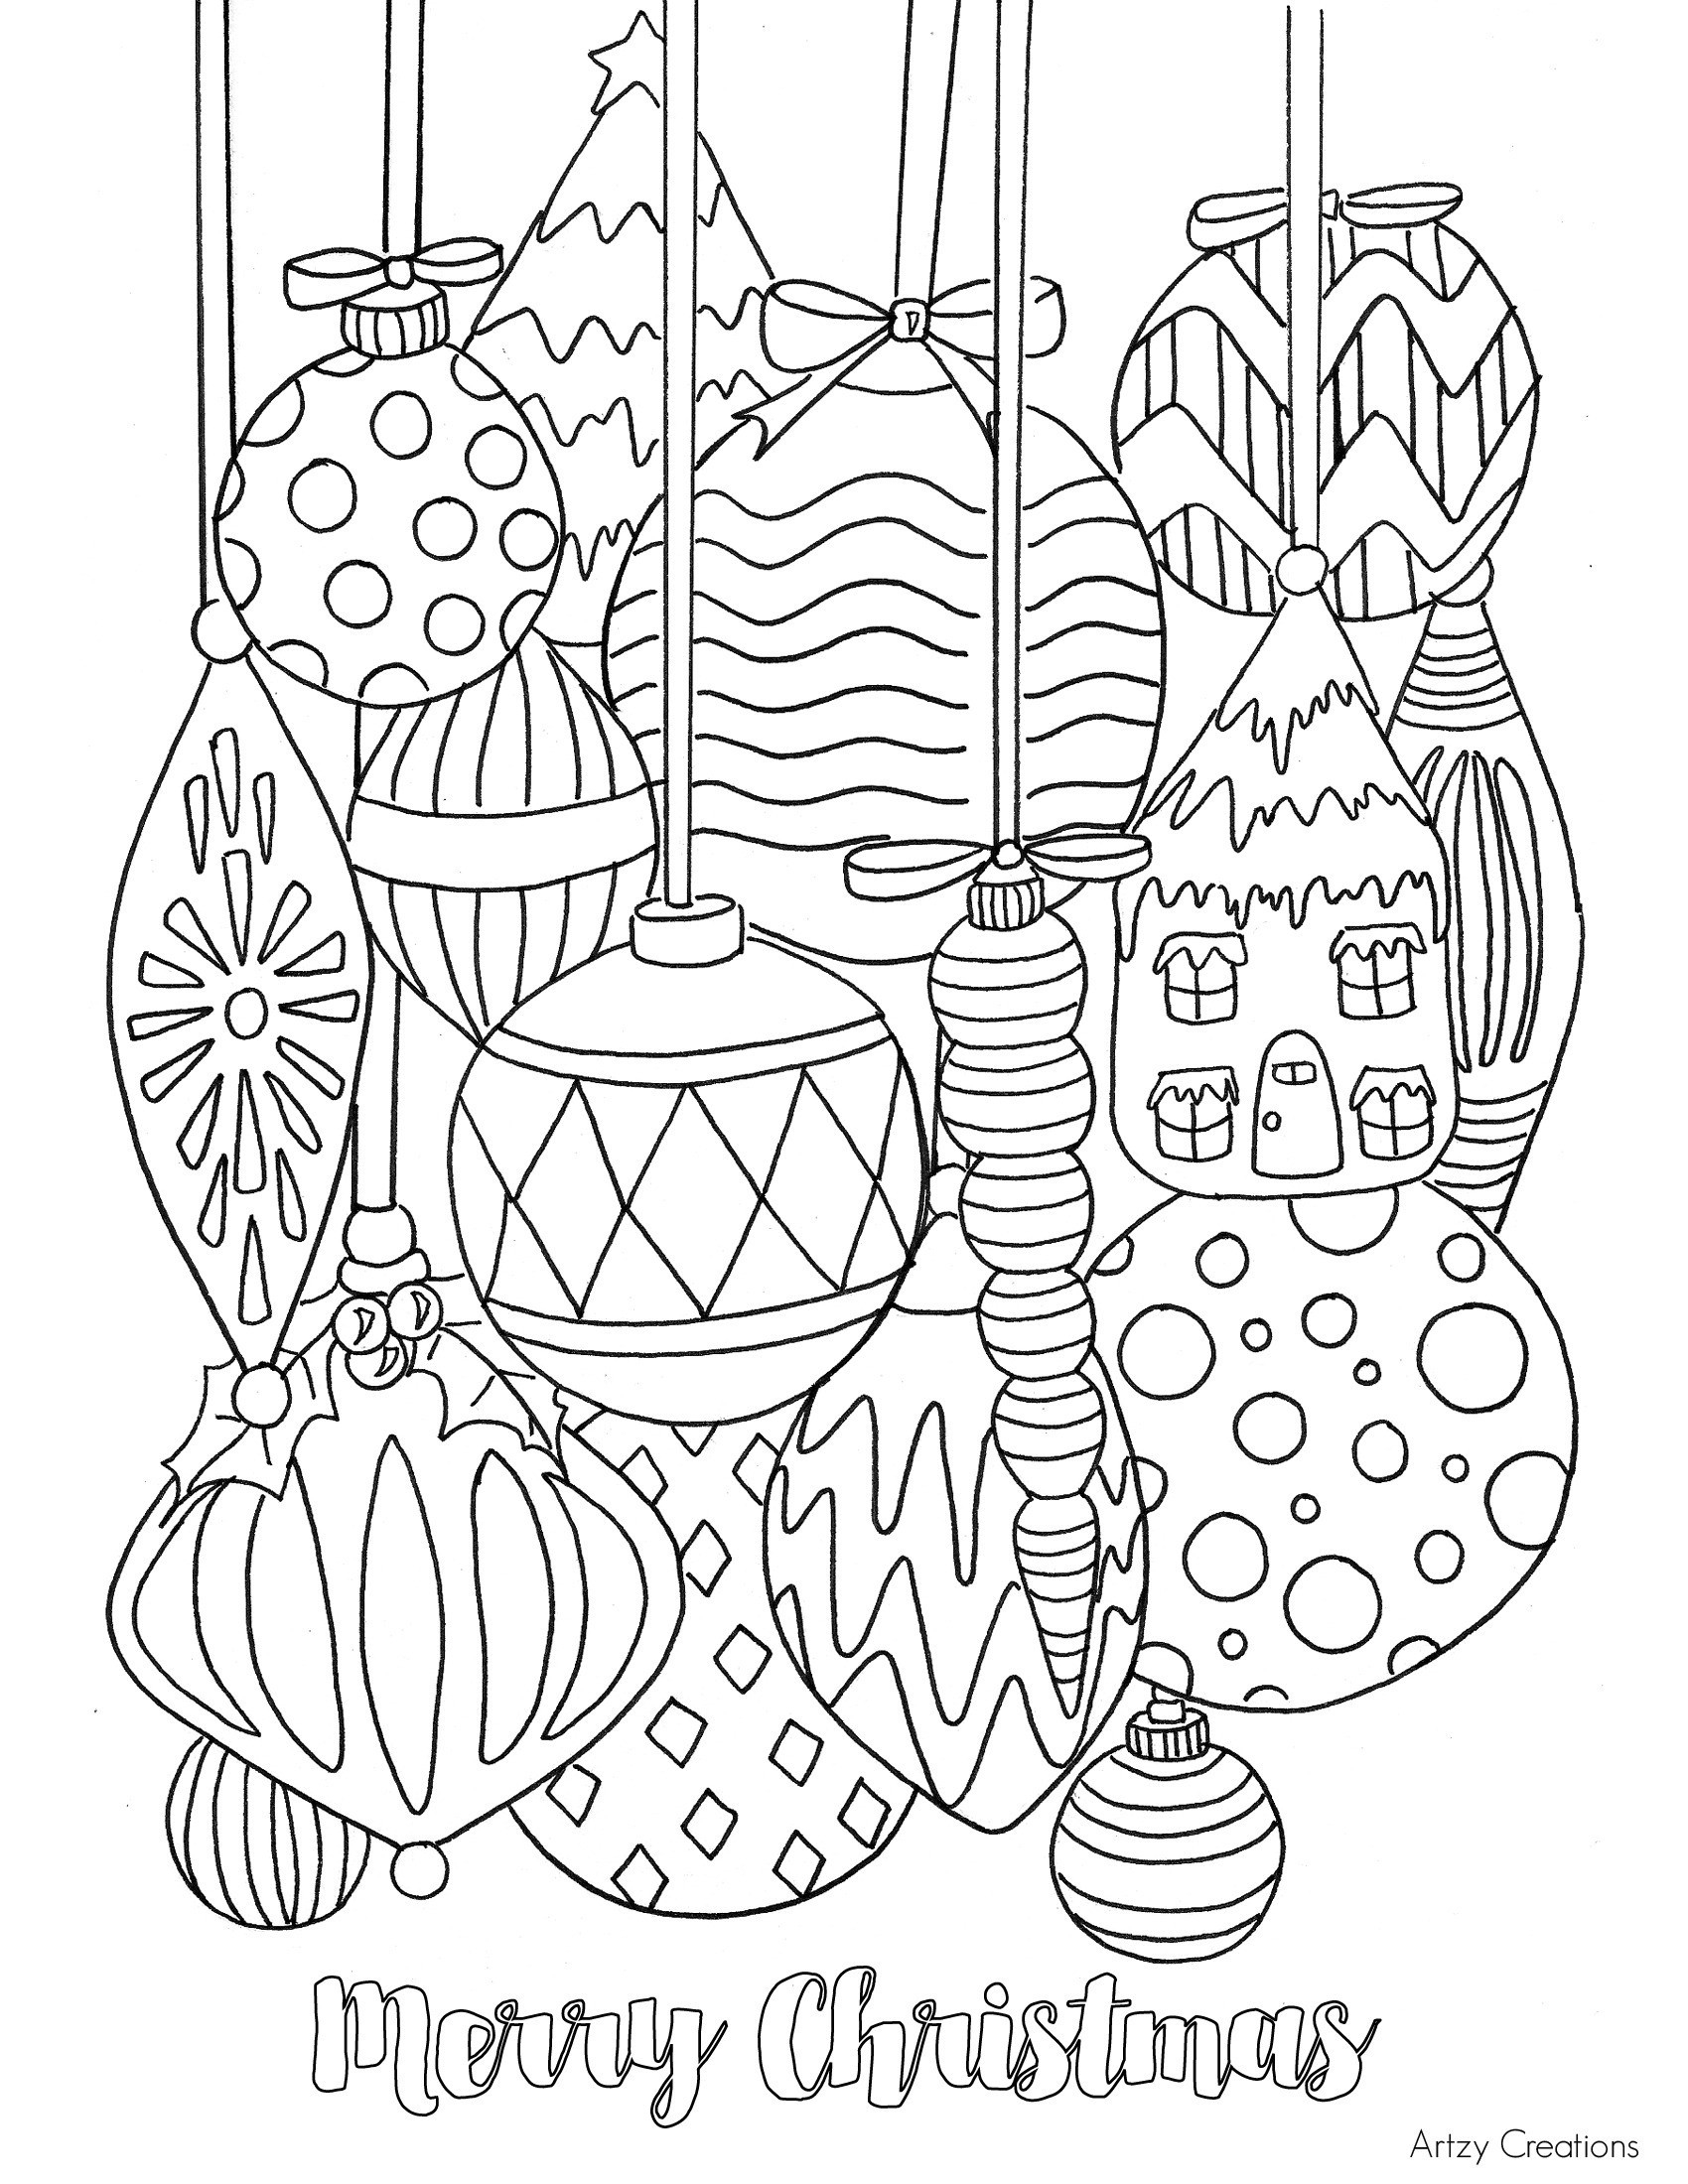 Wallpaper Coloring Pages  Download 1t - Free For kids